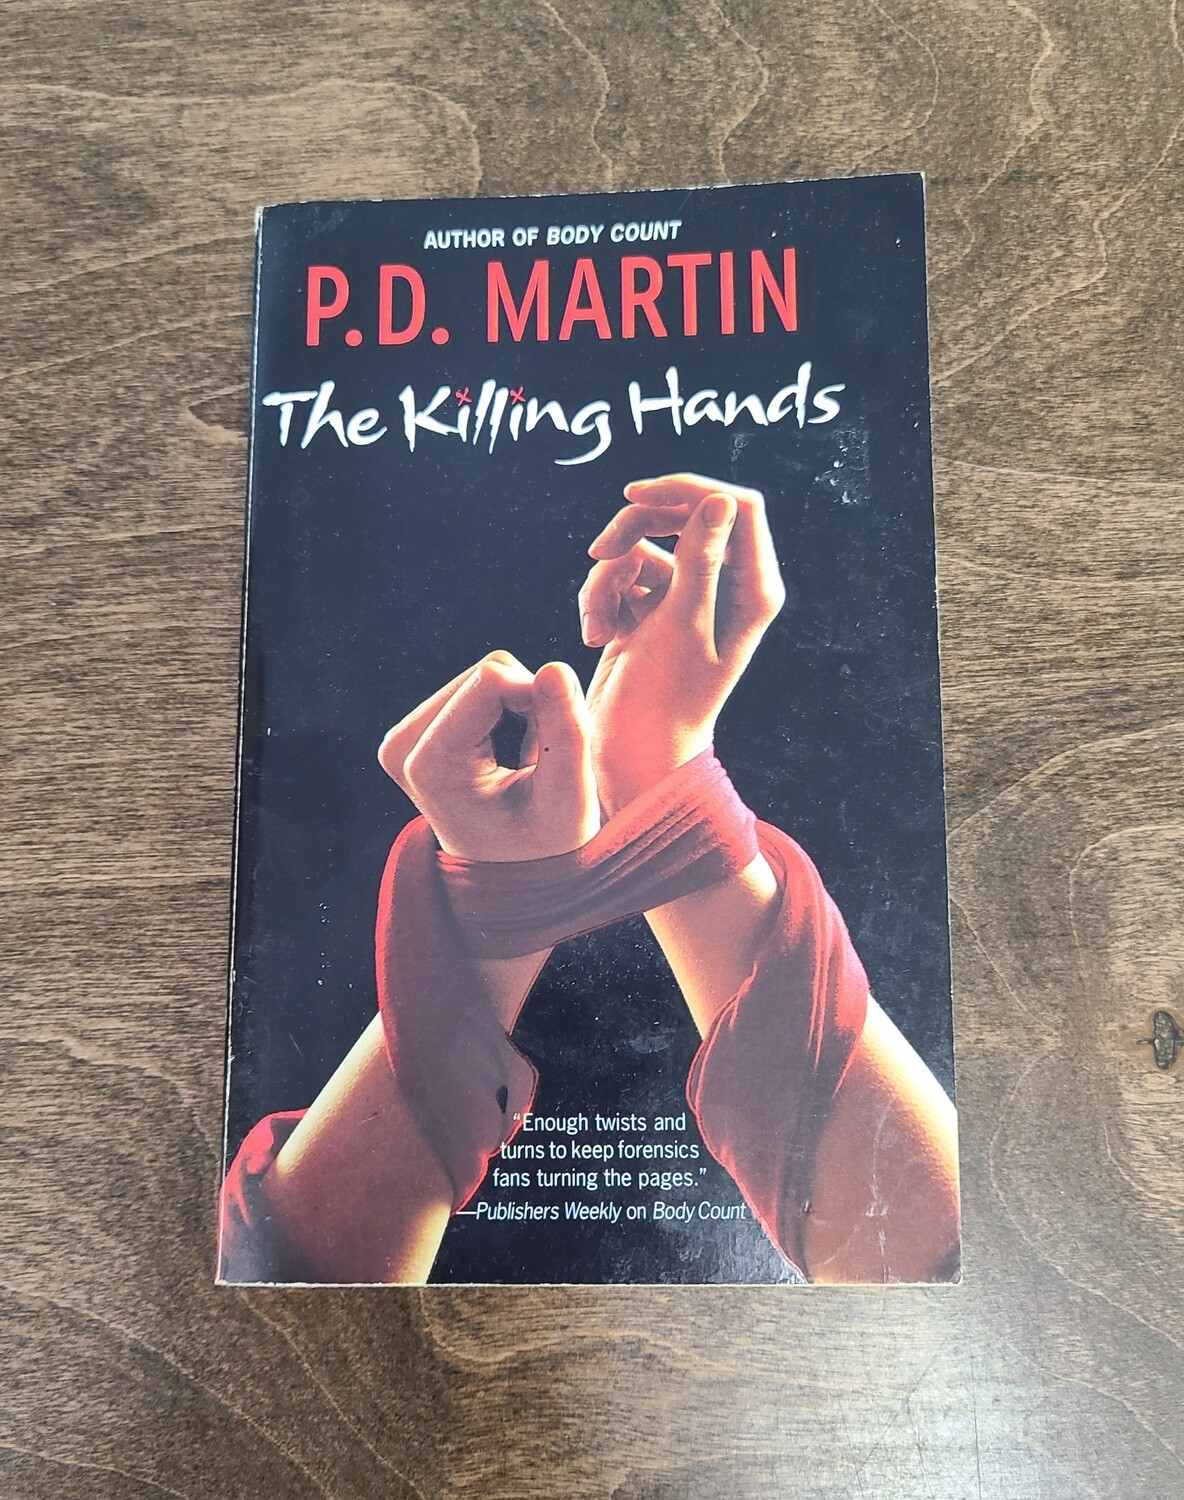 The Killing Hands by P. D. Martin